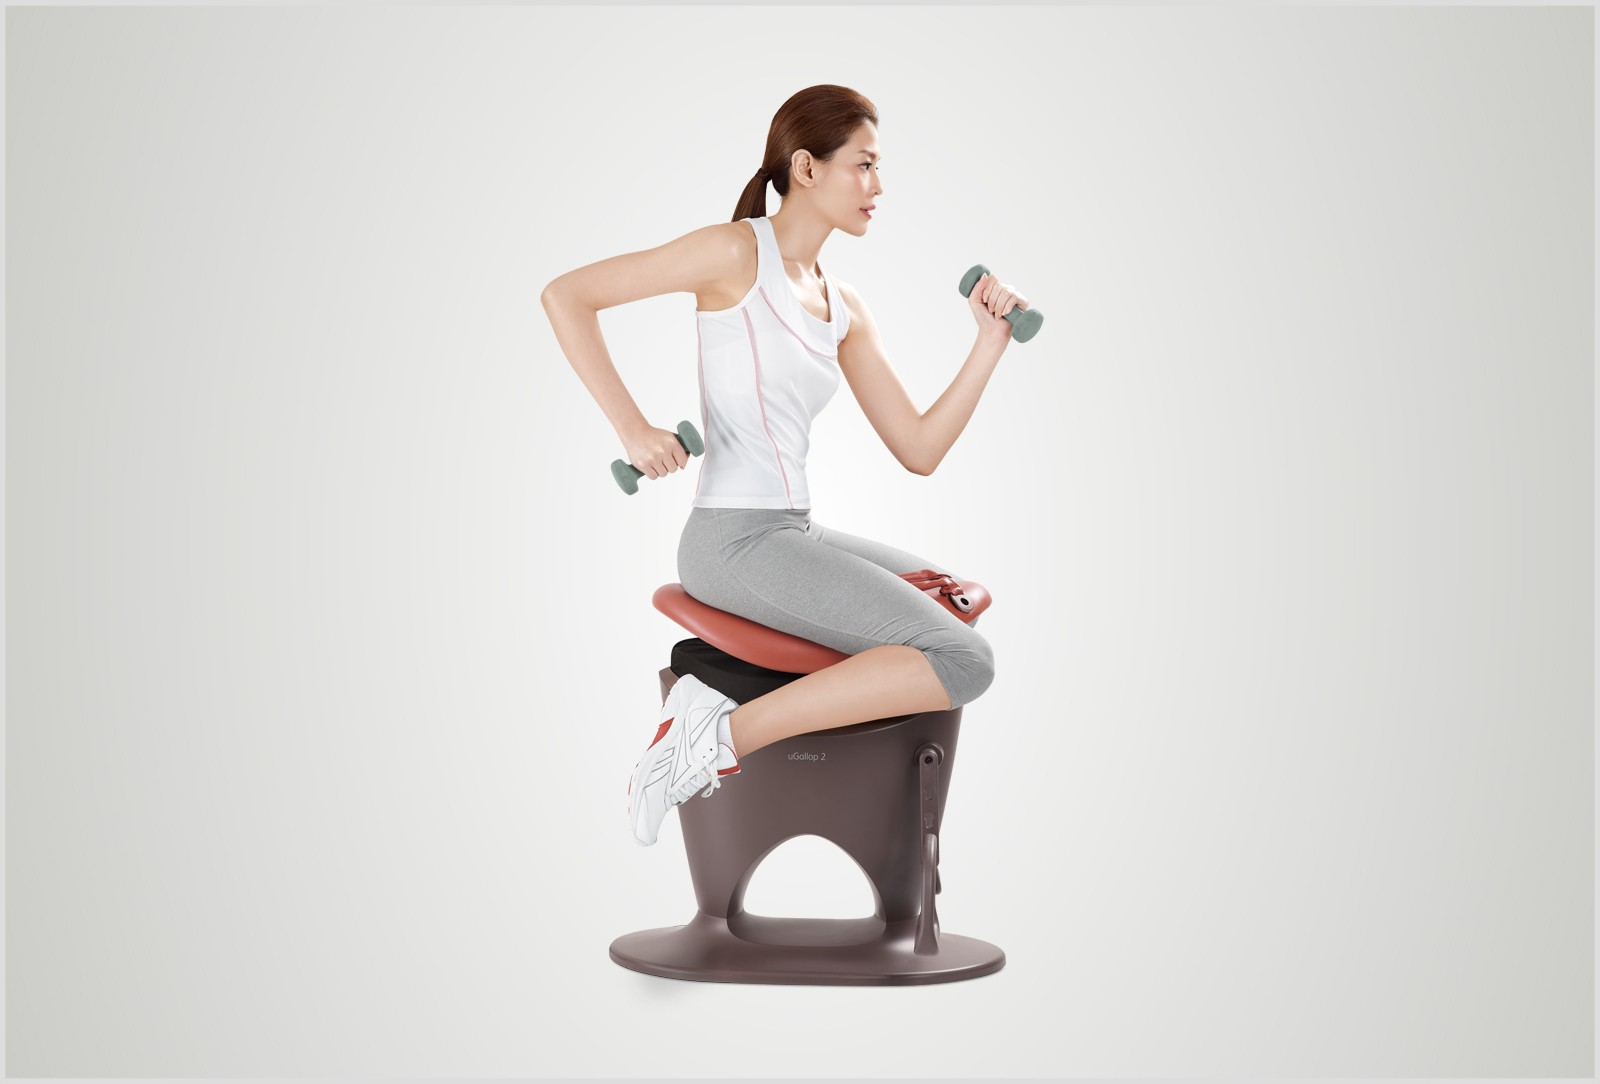 ugallop exercise machine